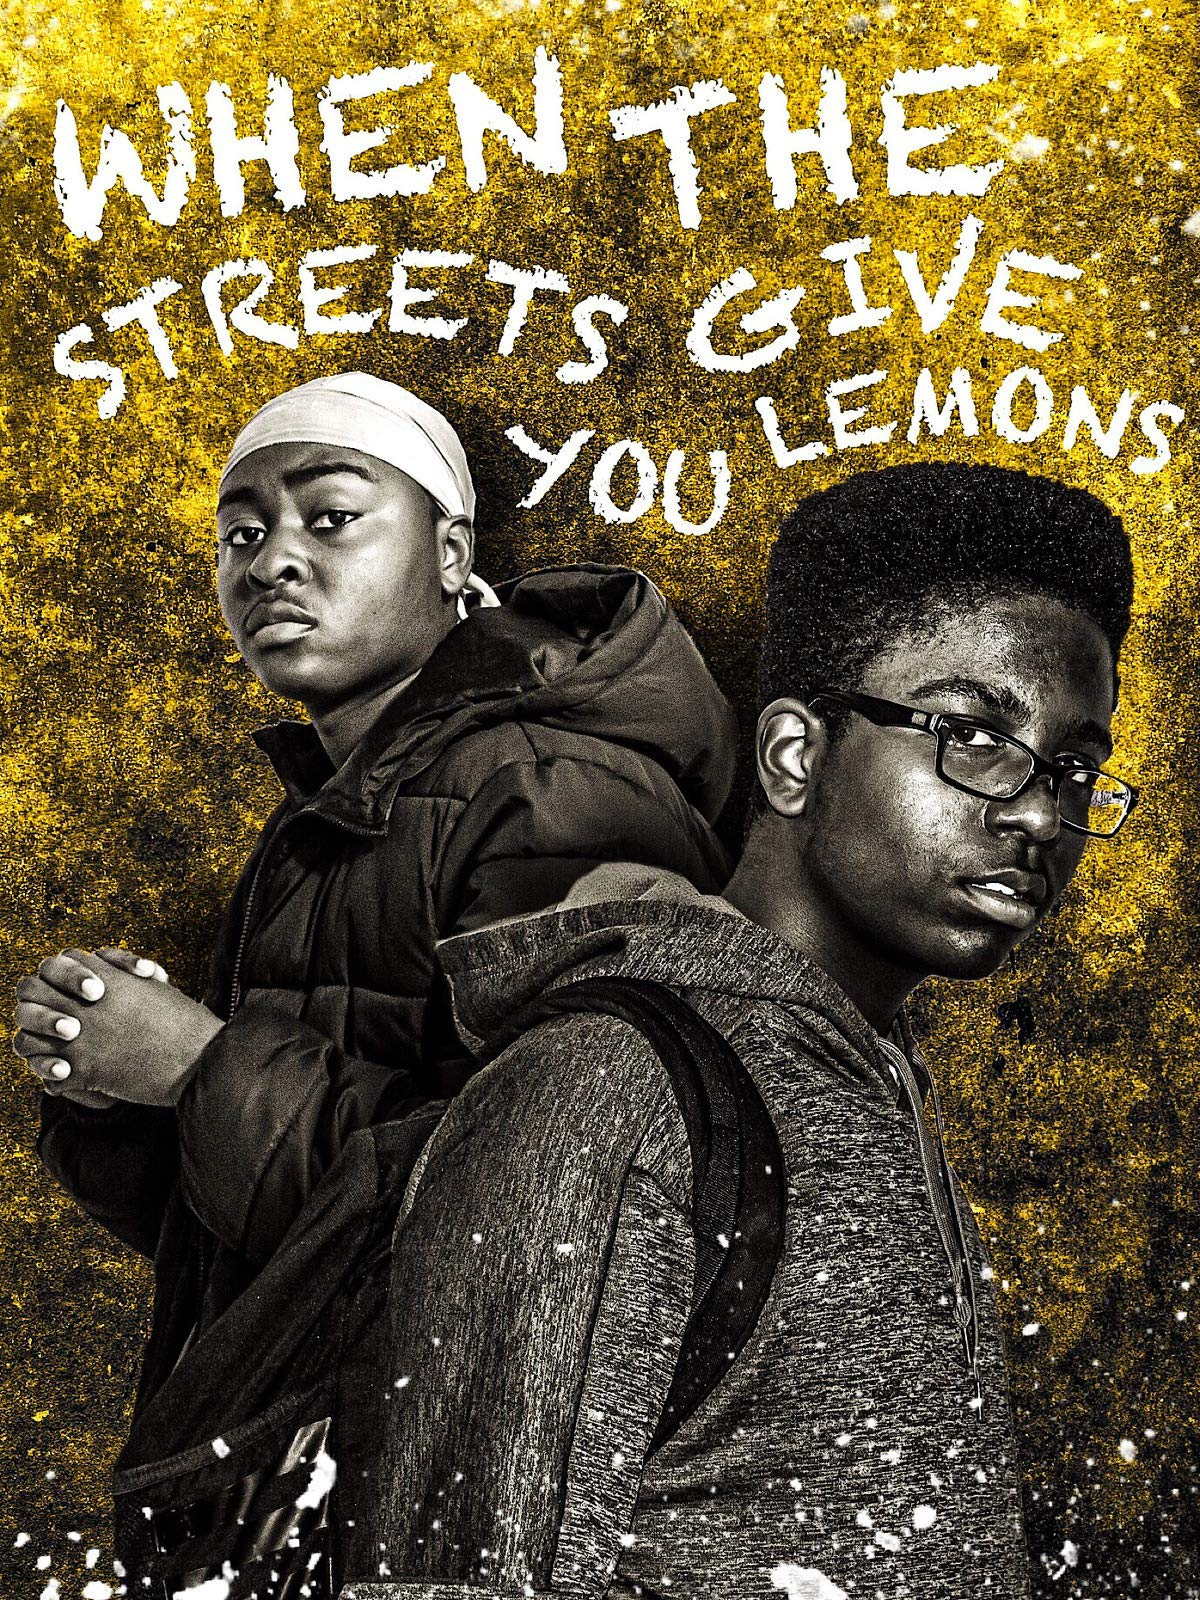 When the Streets Give You Lemons